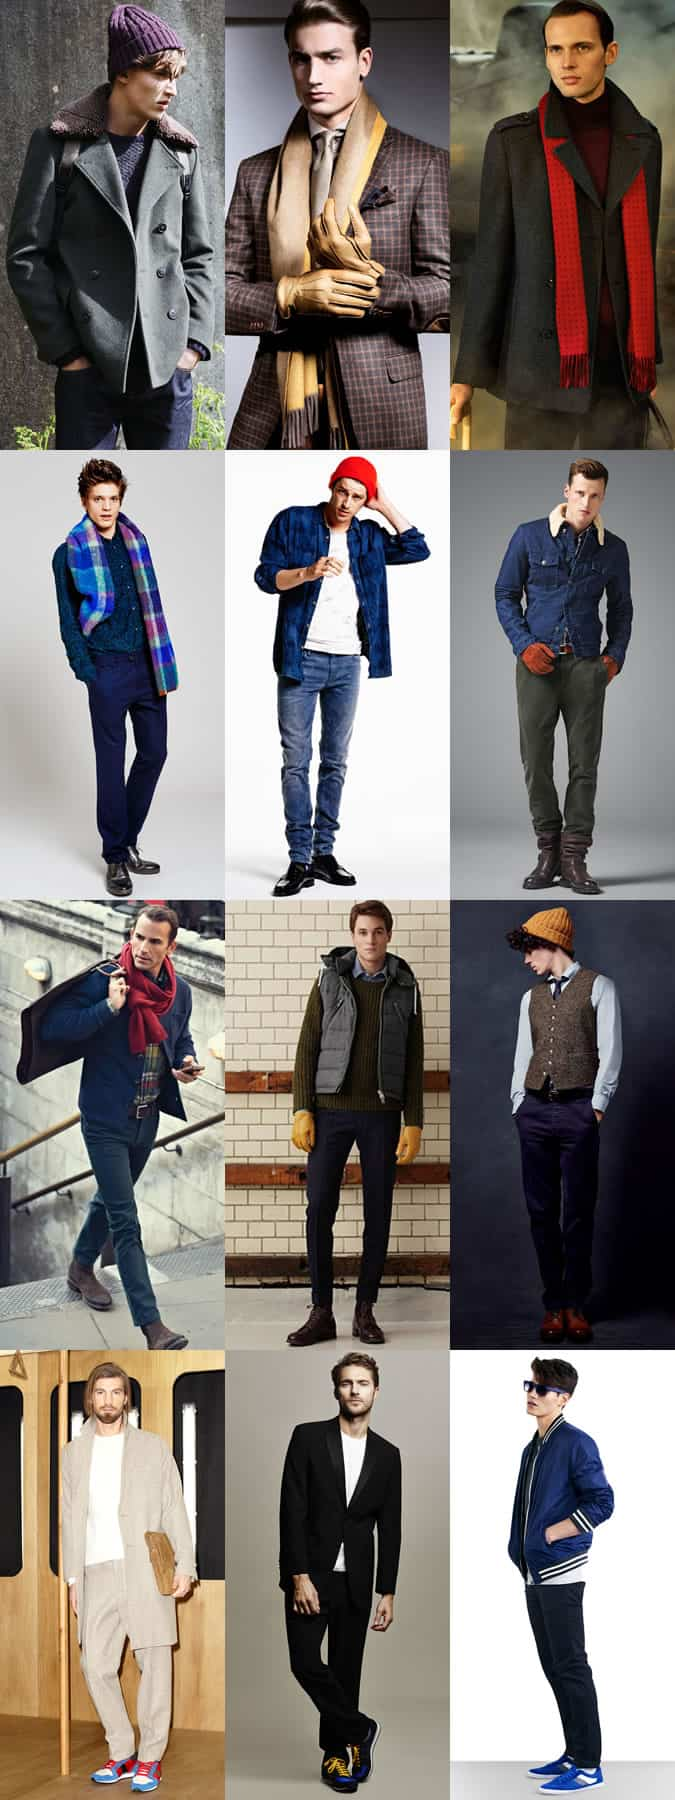 Men's Bold Coloured Accessories and Trainers - Winter Outfit Inspiration Lookbook